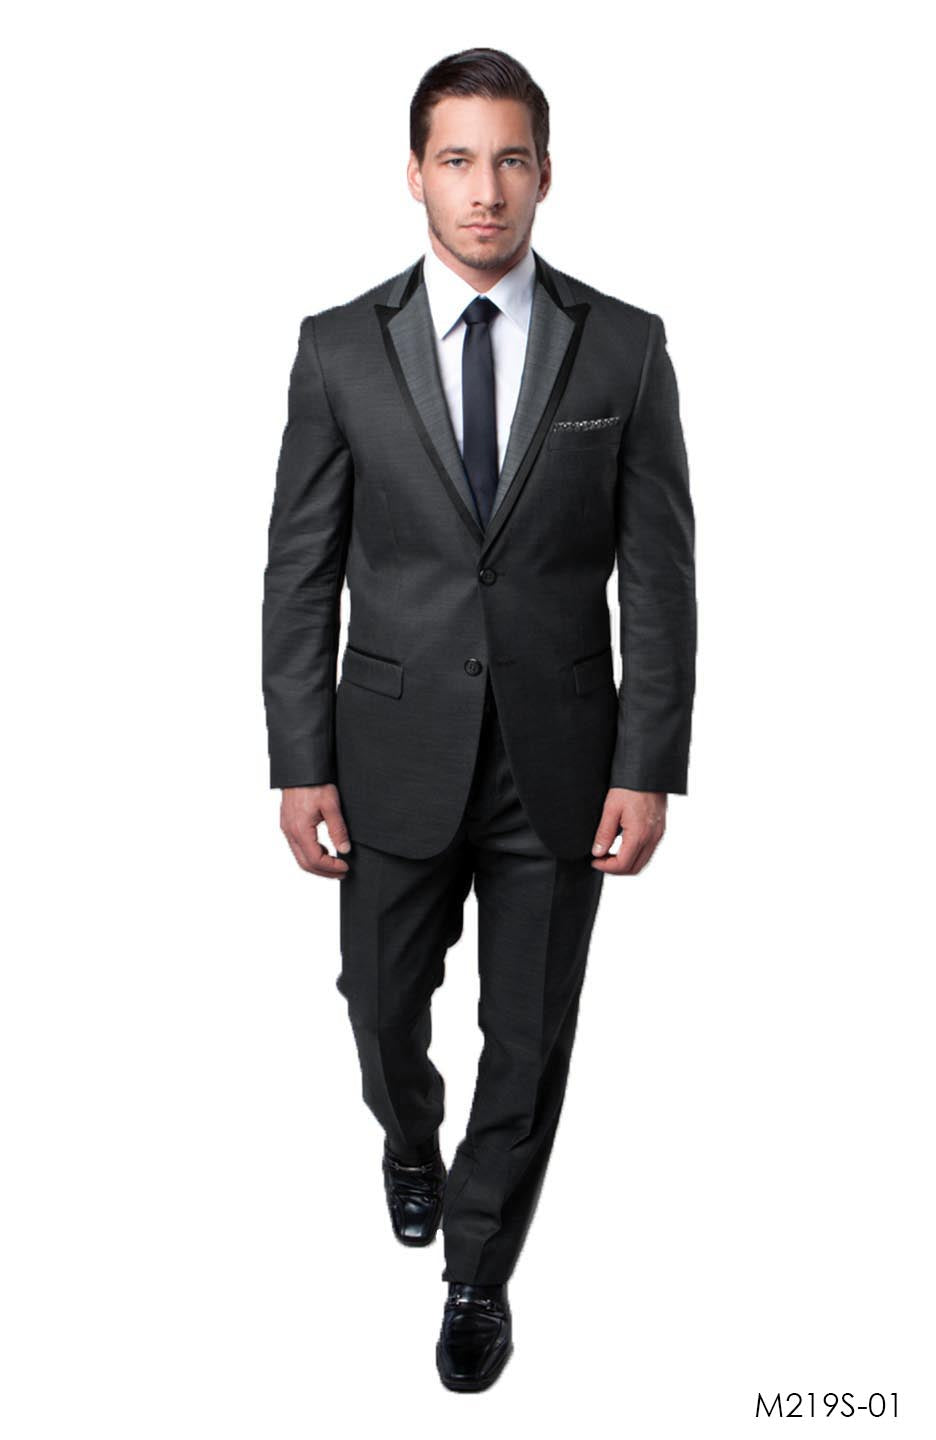 Charcoal / Black Suit For Men Formal Suits For All Ocassions M219S-01